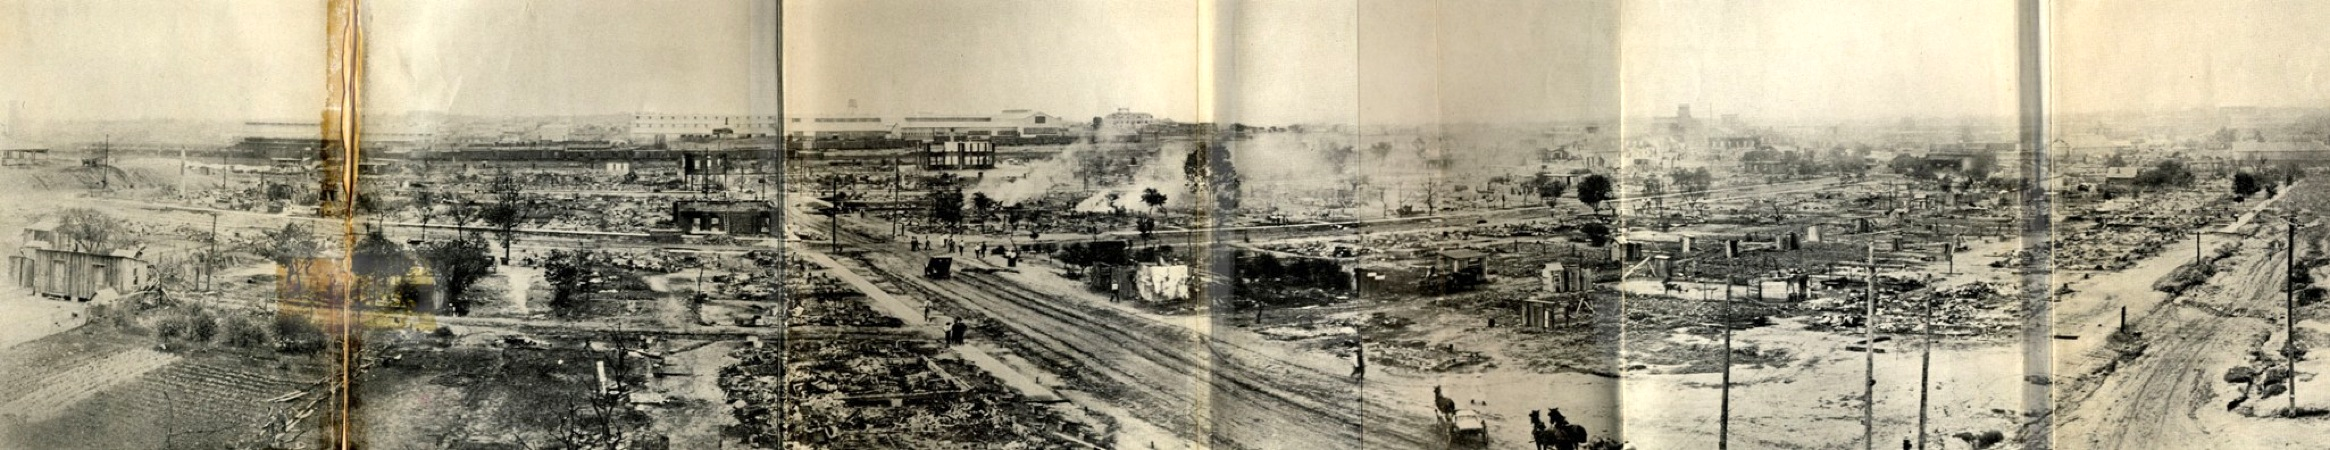 https://i1.wp.com/upload.wikimedia.org/wikipedia/commons/5/5f/Panorama_of_the_ruined_area_tulsa_race_riots.jpg